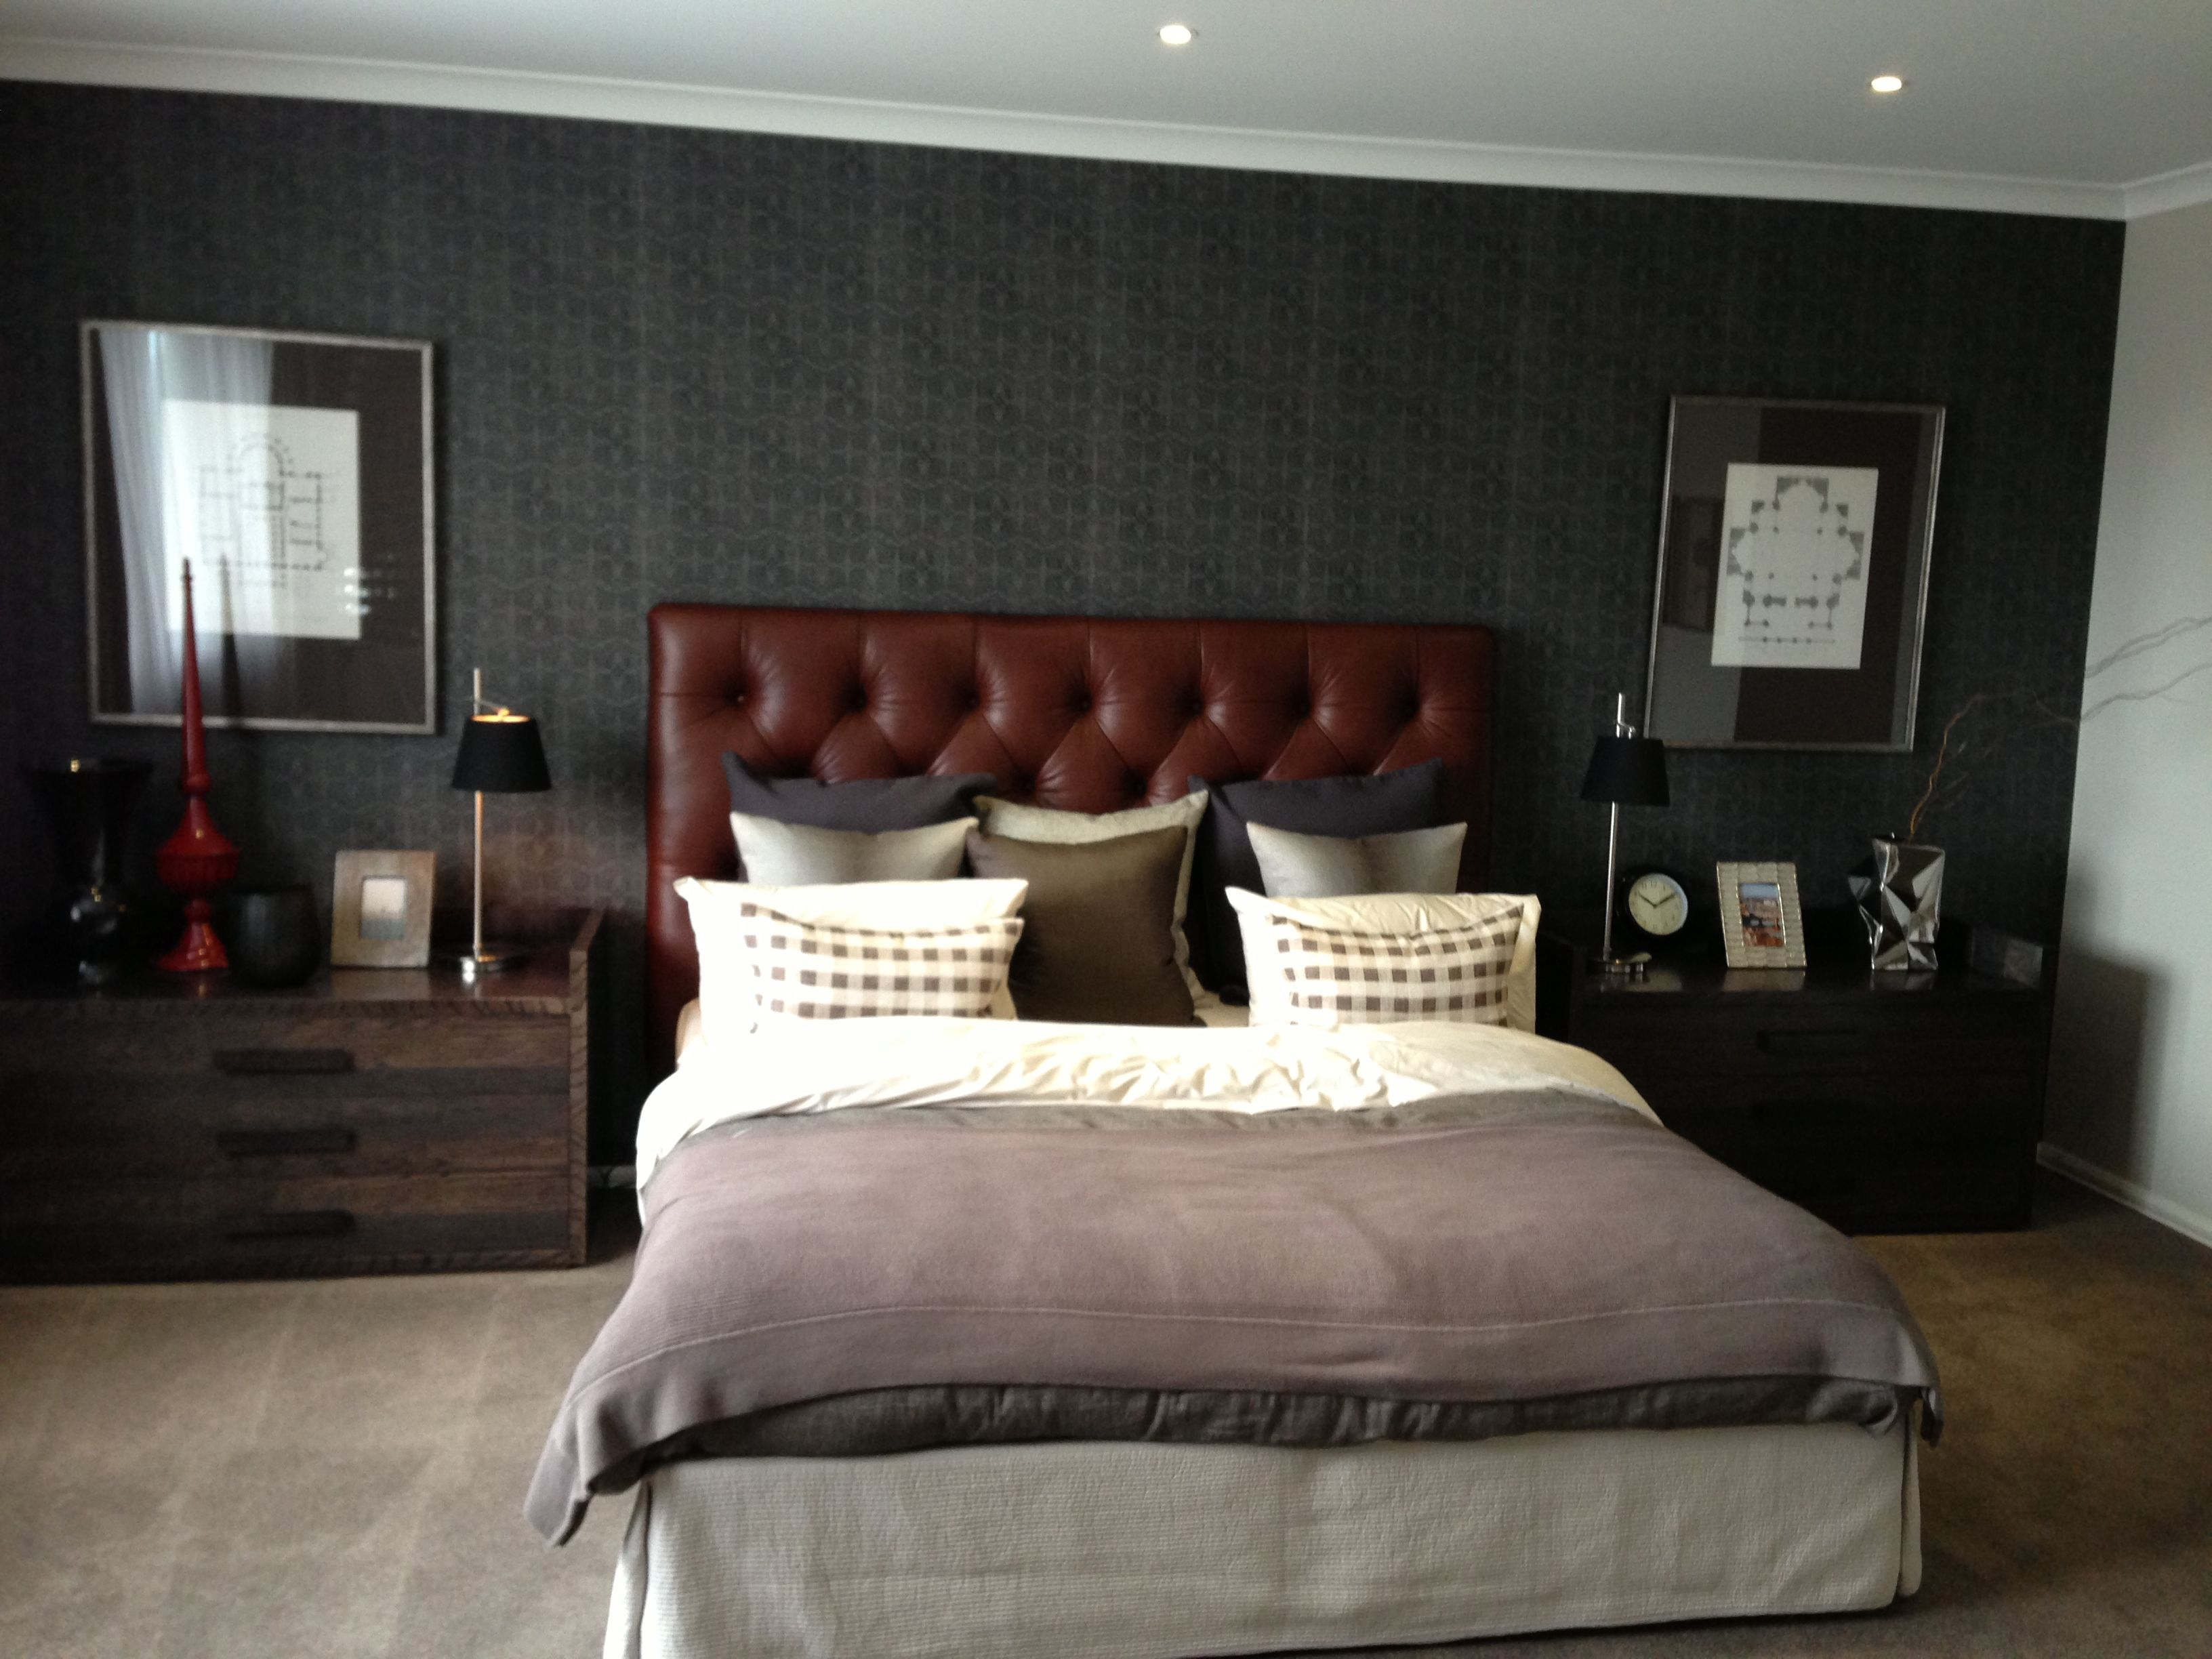 Masculine Bedrooms Interior Decoration With Brown Leather Tufted